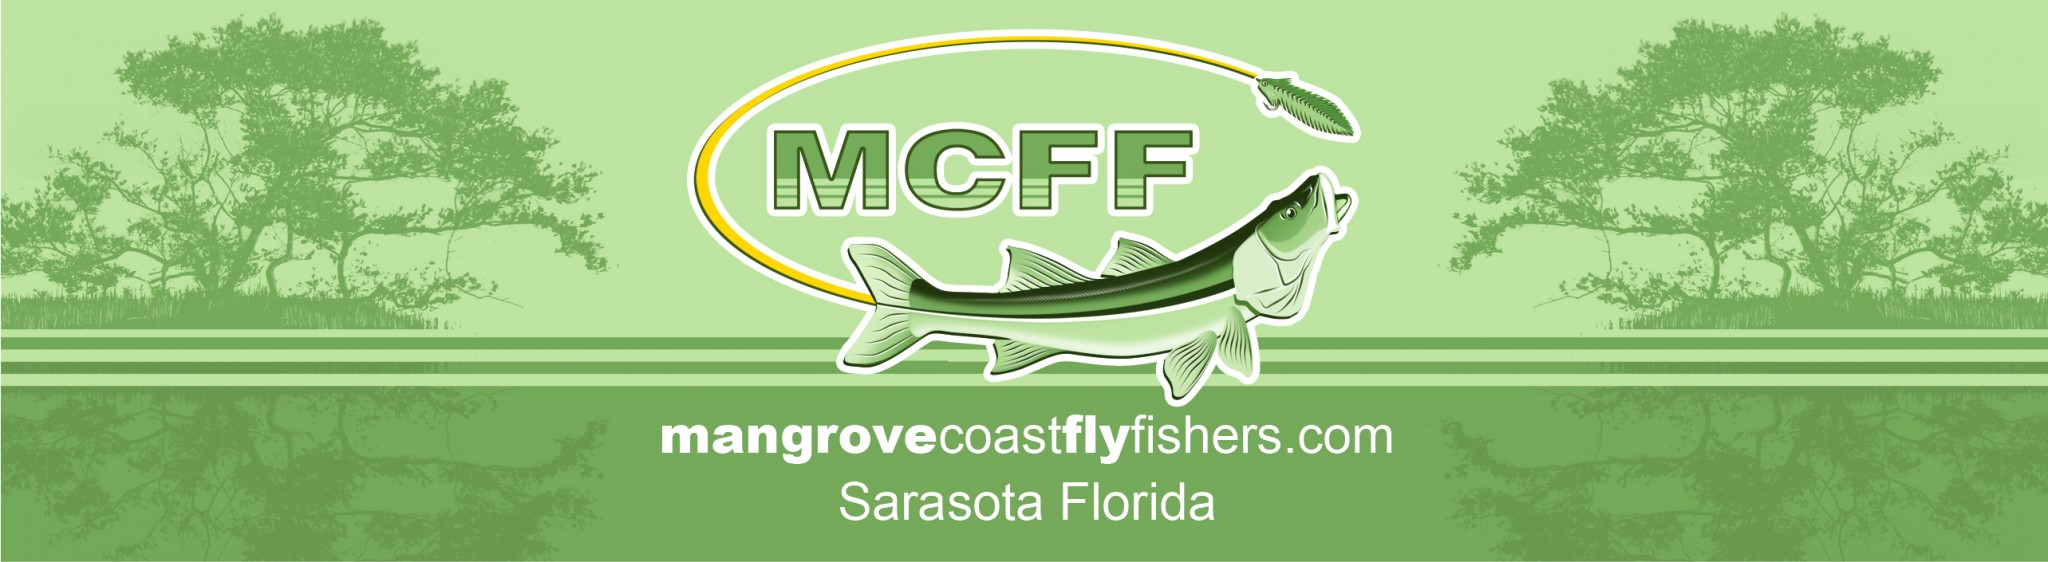 Mangrove Coast Fly Fishers